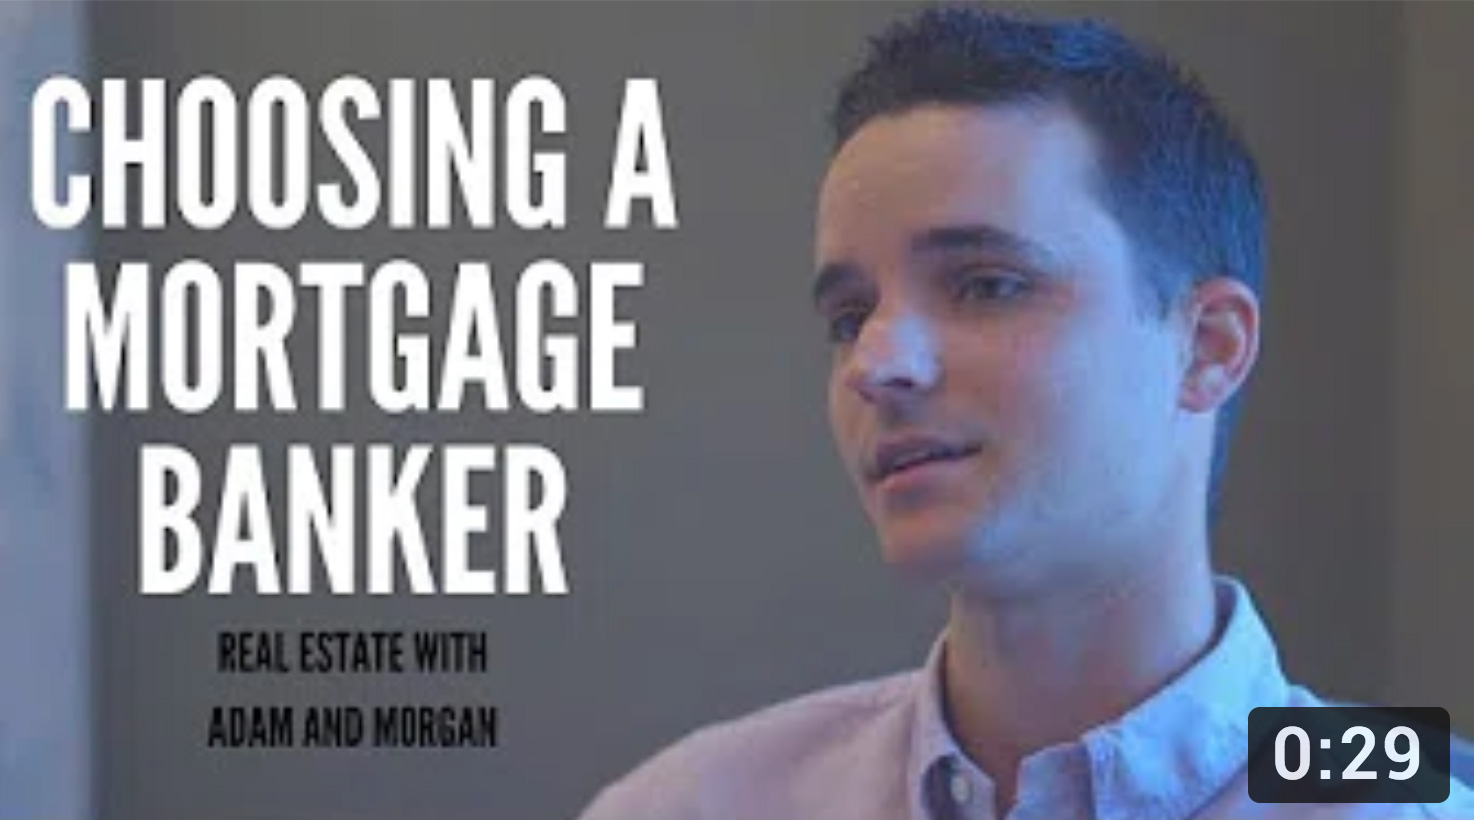 Choosing a Mortgage Banker